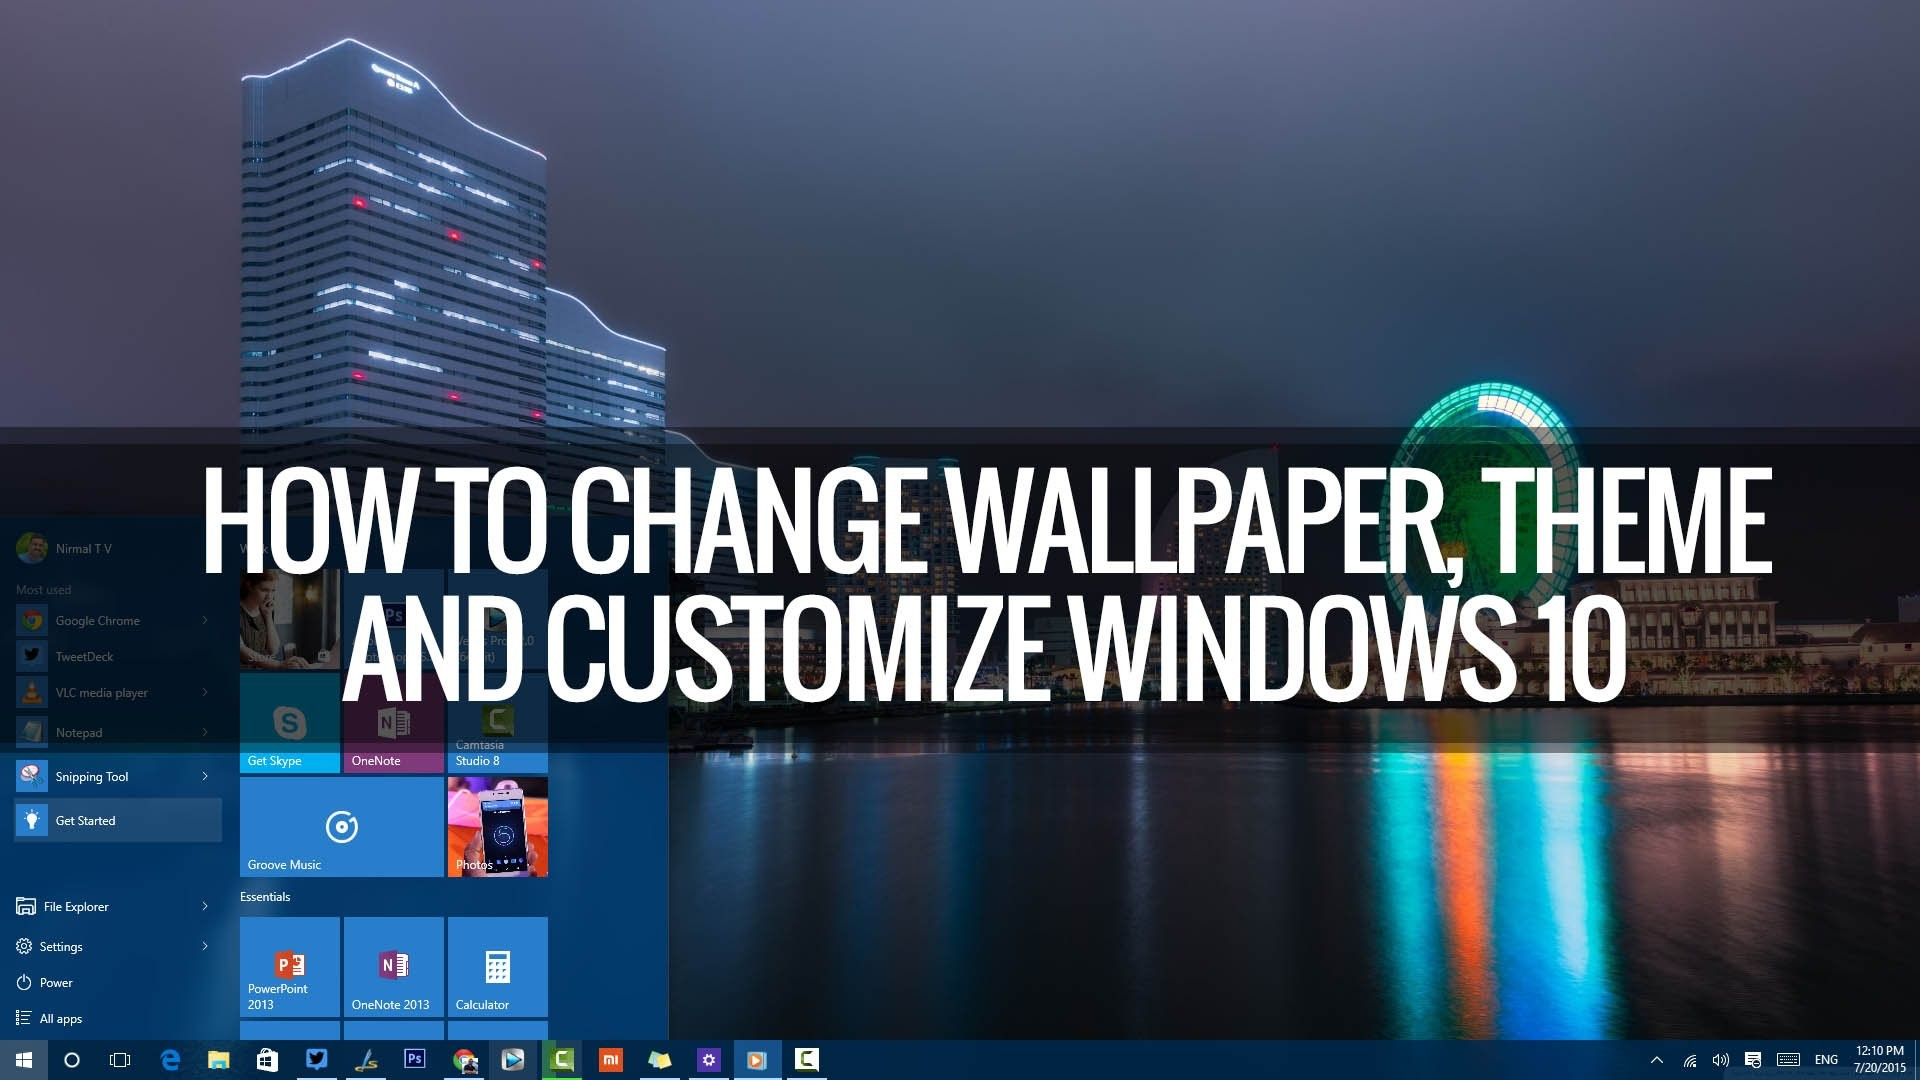 Samsung Themes Prevents Multiple Lock Screen Wallpaper: Windows 8 Lock Screen Wallpapers (74+ Images